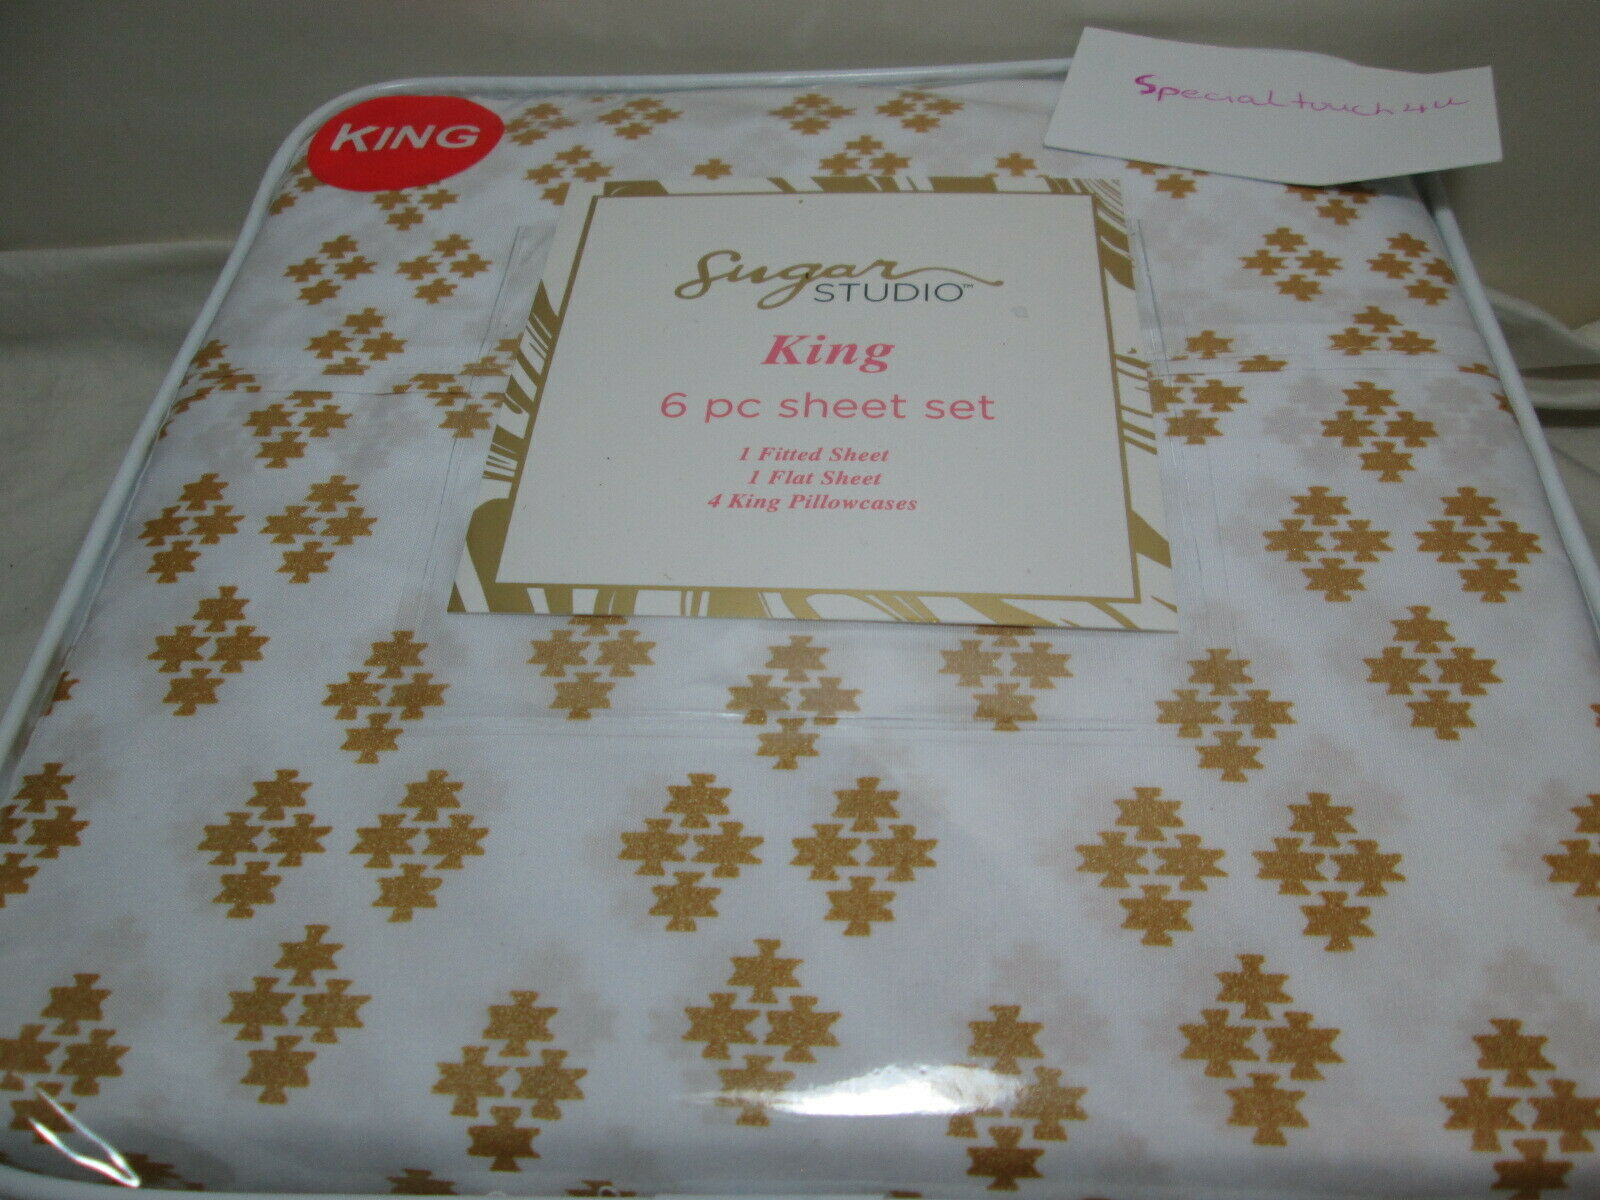 New Sugar Studio 6 Piece King Sheet Set gold Diamonds and White NIP